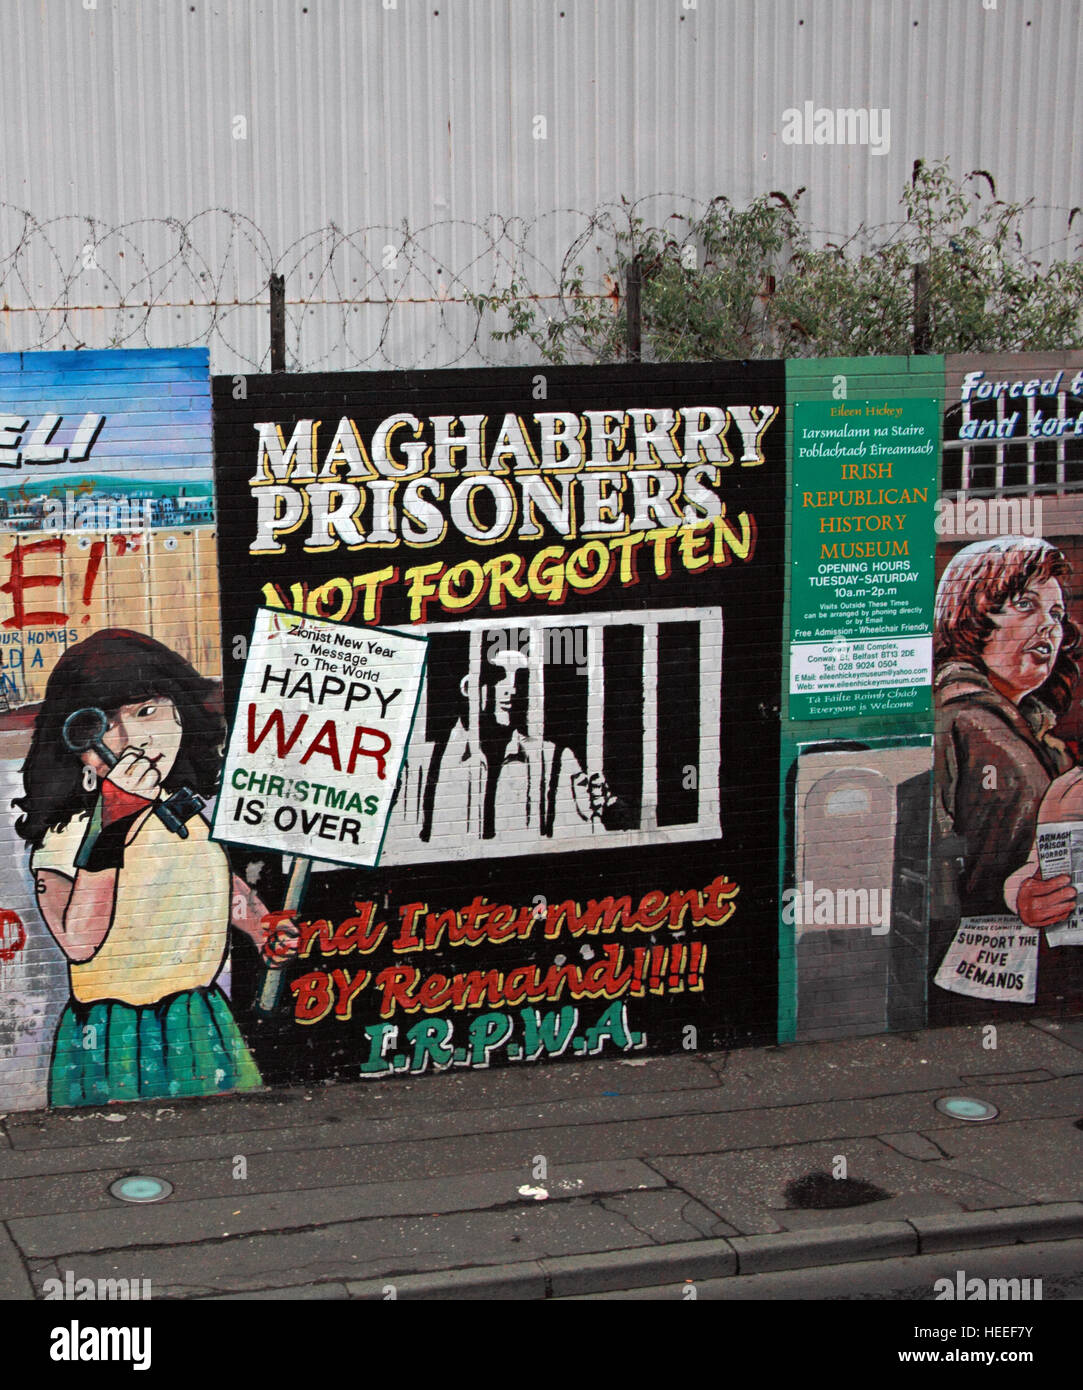 Belfast Falls Rd Republican Mural- Maghaberry Prisoners Not Forgotten LRPWA Internment by remand - Stock Image